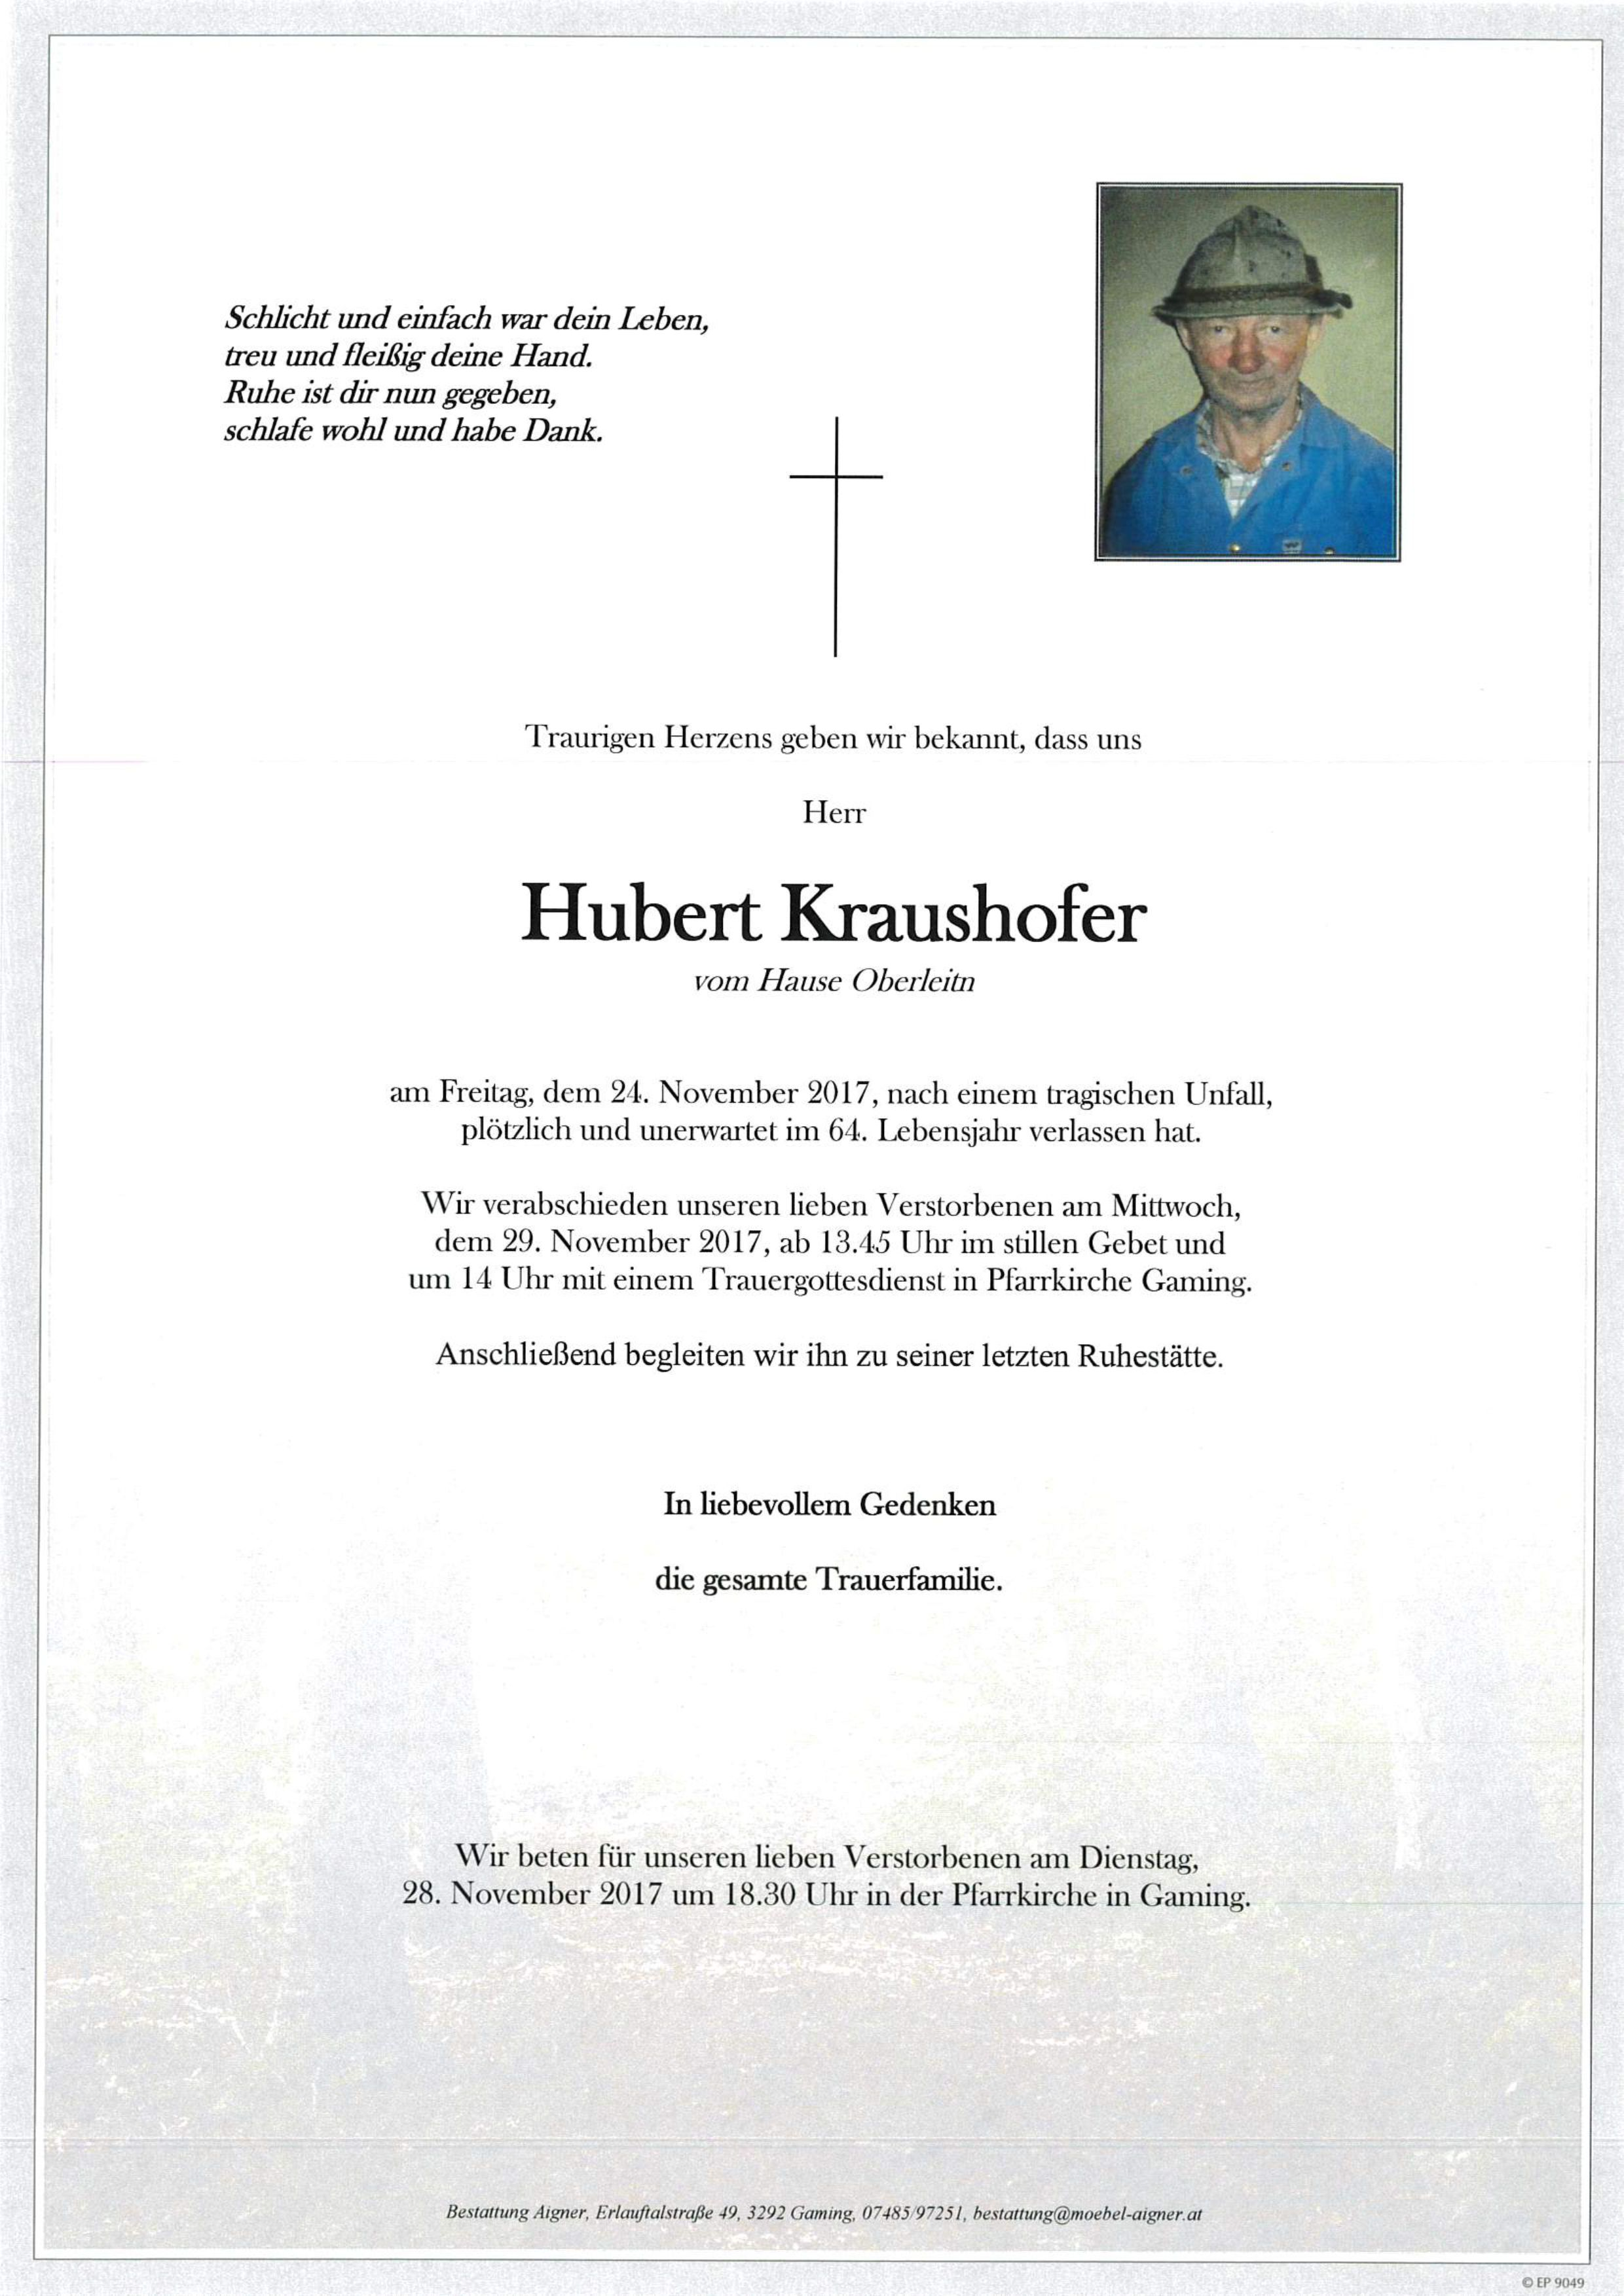 Hubert Kraushofer